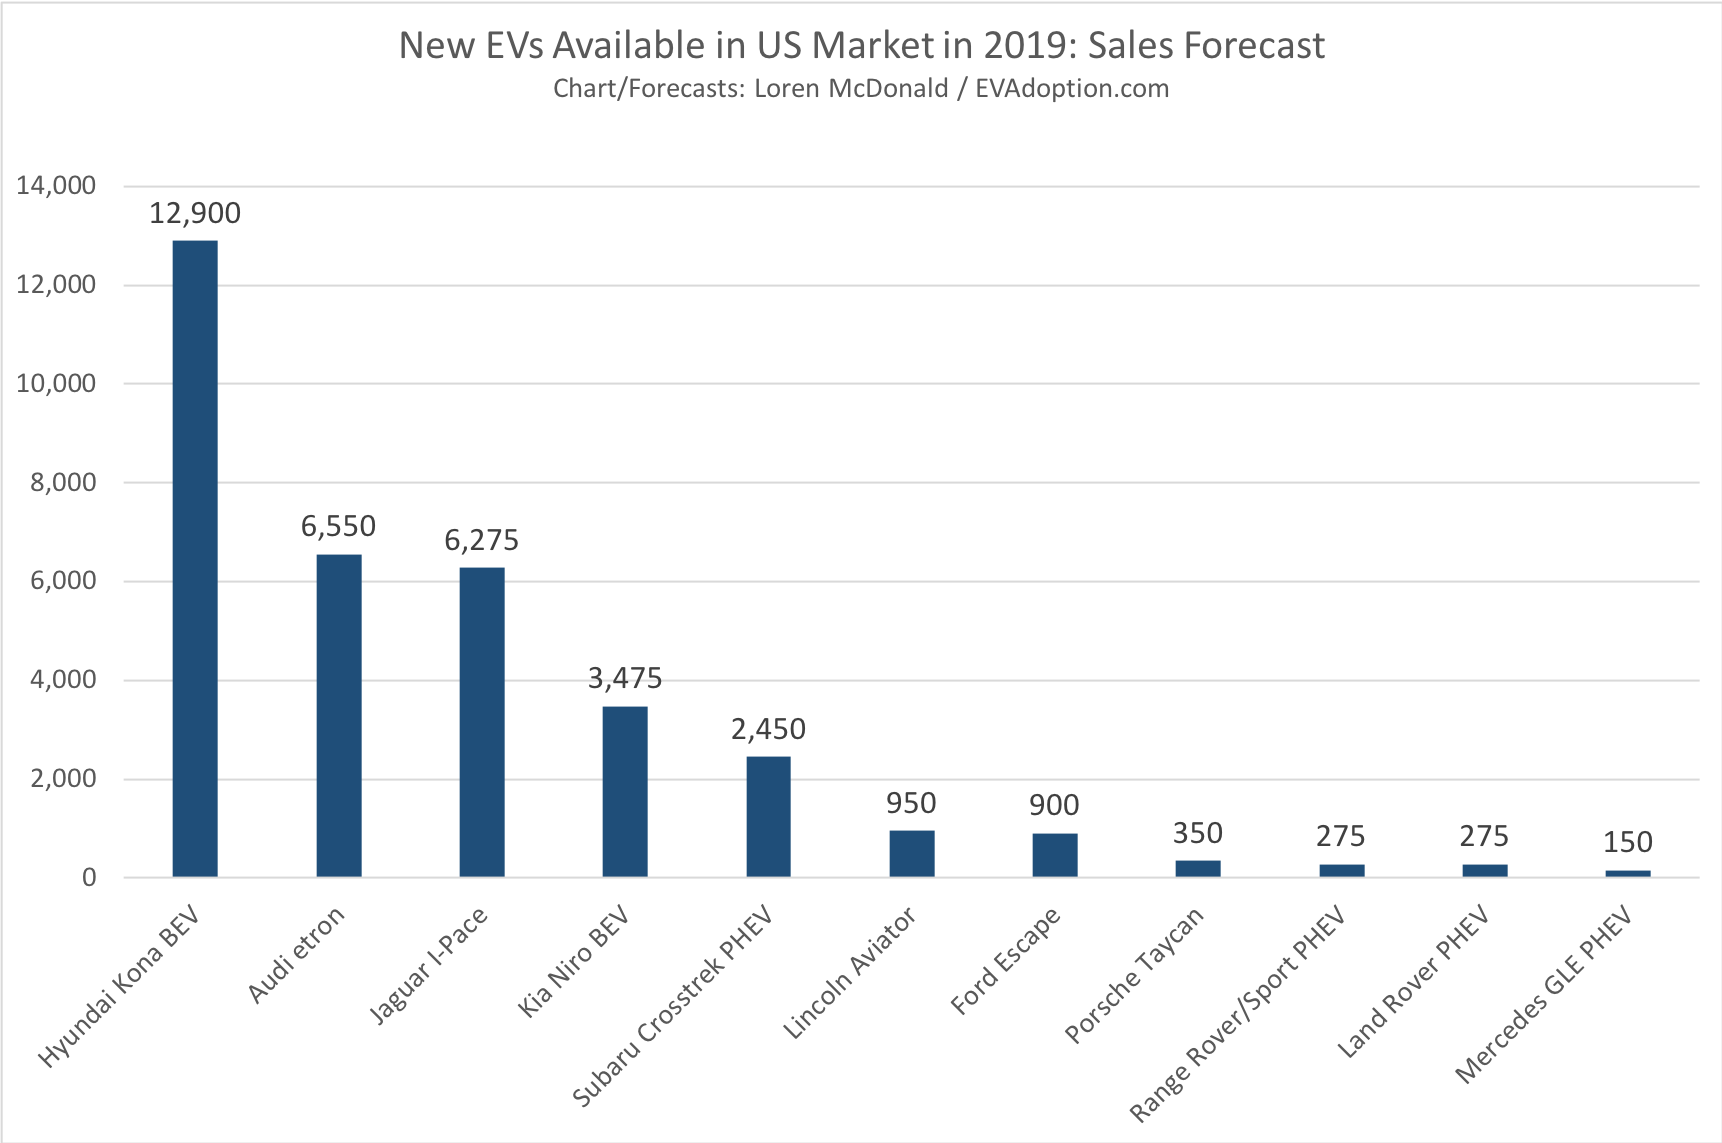 New EVs Available in US Market in 2019-Sales Forecast